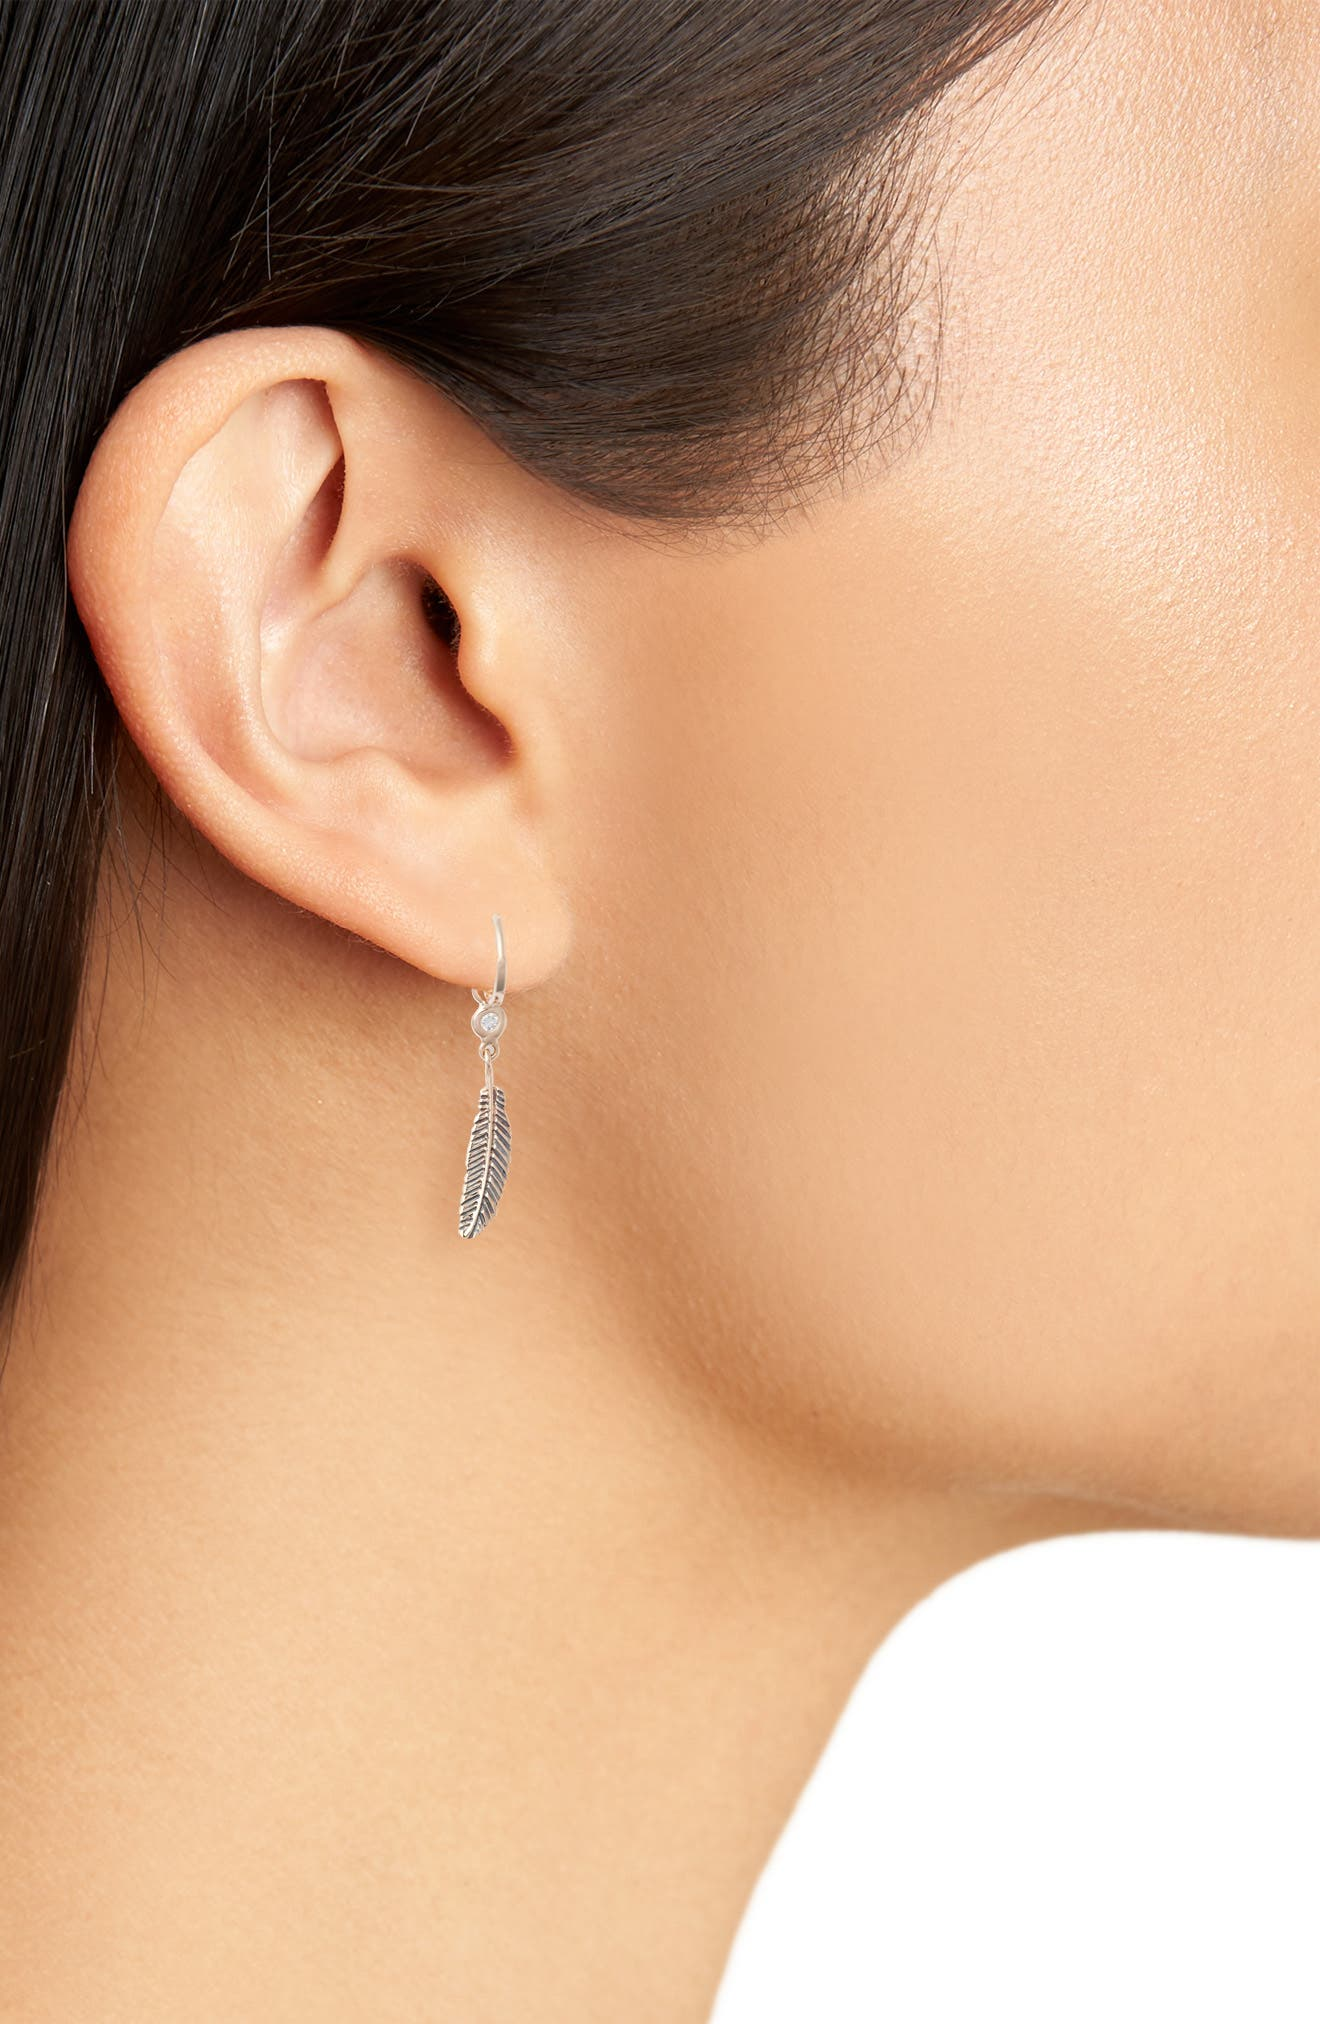 KISMET BY MILKA, Single Feather Earring, Alternate thumbnail 2, color, ROSE GOLD/ DIAMOND